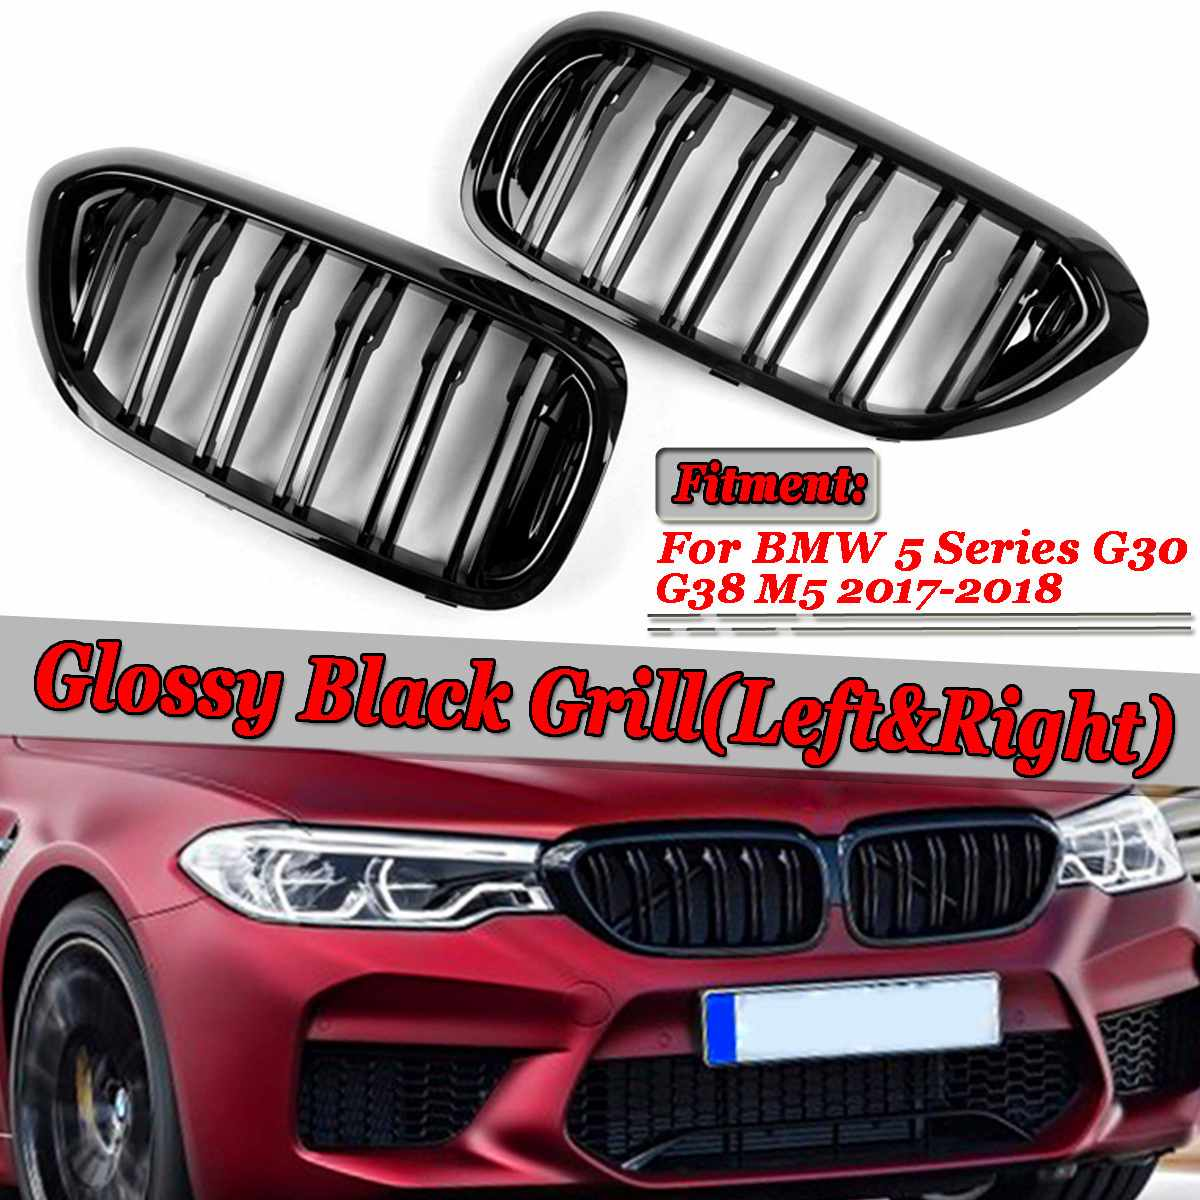 A Pair Gloss Black Car Front Bumper Kidney Grille <font><b>Grills</b></font> Car Front Bumper Grille For BMW 5 Series <font><b>G30</b></font> G31 G38 M5 2017-2018 image